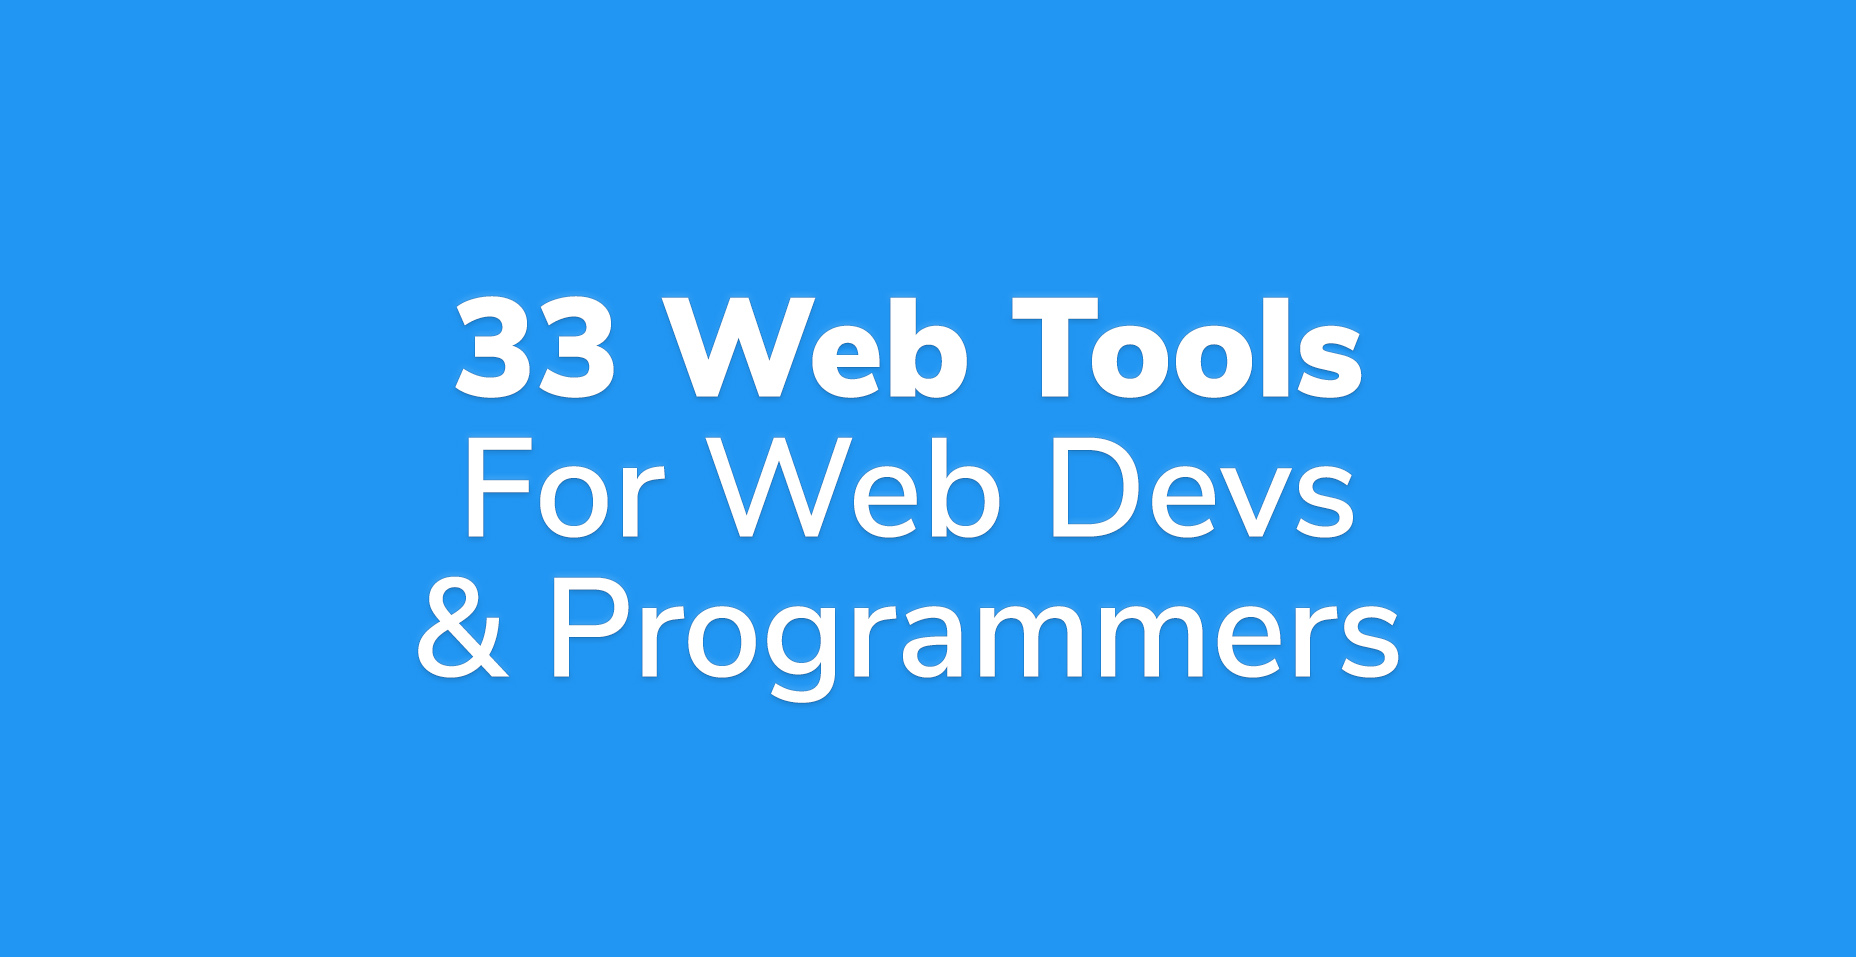 33 Best Online Web Tools For Web Developers And Programmers | Code Wall